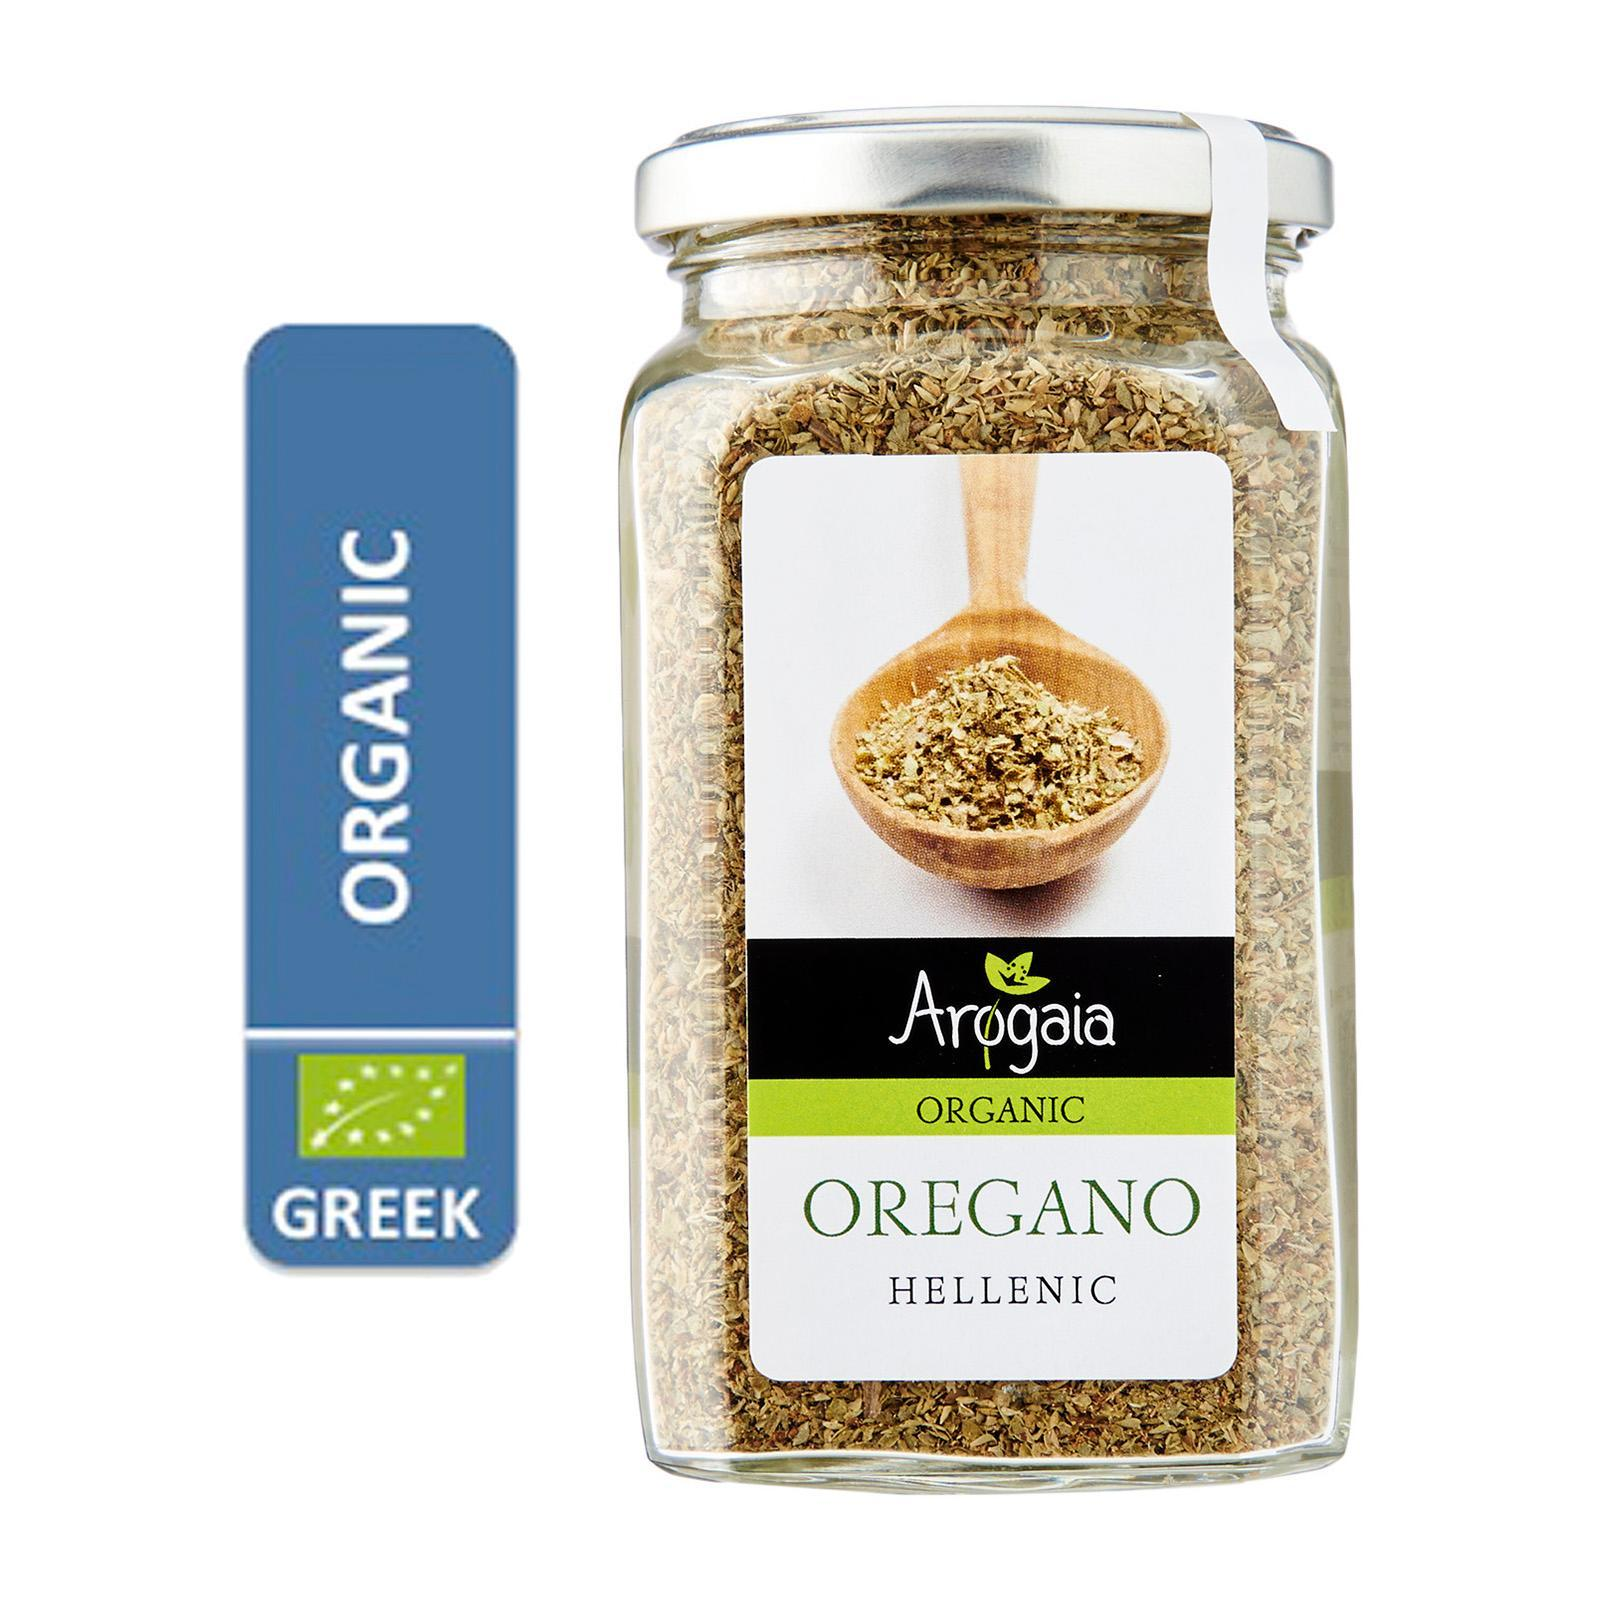 Arogaia Organic Greek Oregano In A Glass Jar - By Agora Products